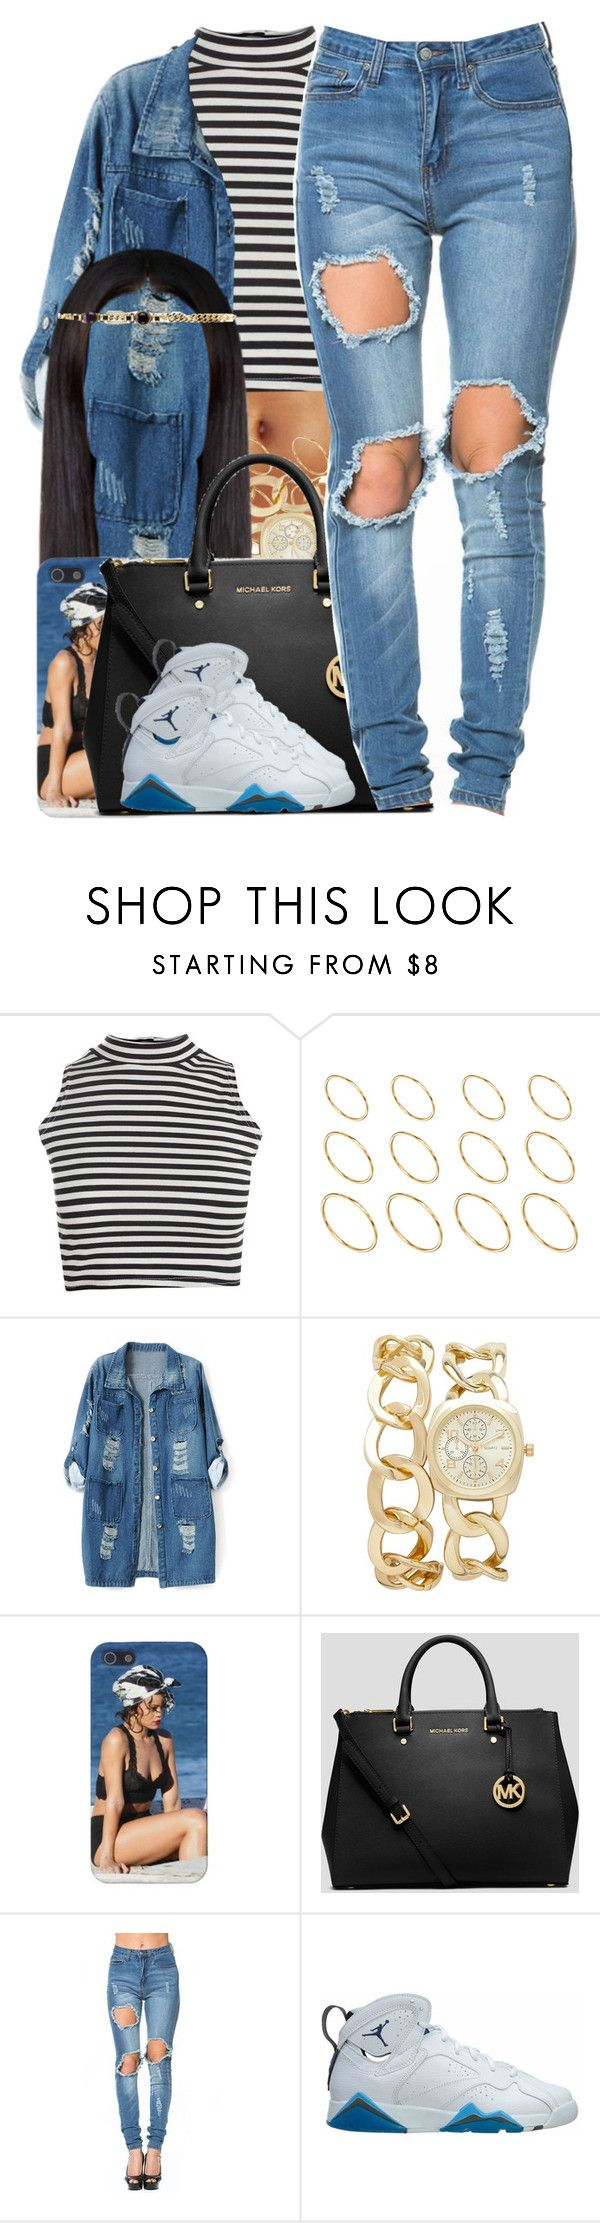 """""""Avery Wilson / Change My Mind"""" by nasiaamiraaa ❤ liked on Polyvore featuring Boohoo, ASOS, Chicnova Fashion, Forever New, MICHAEL Michael Kors, Retrò, Alessandra Rich and NanaOutfits"""